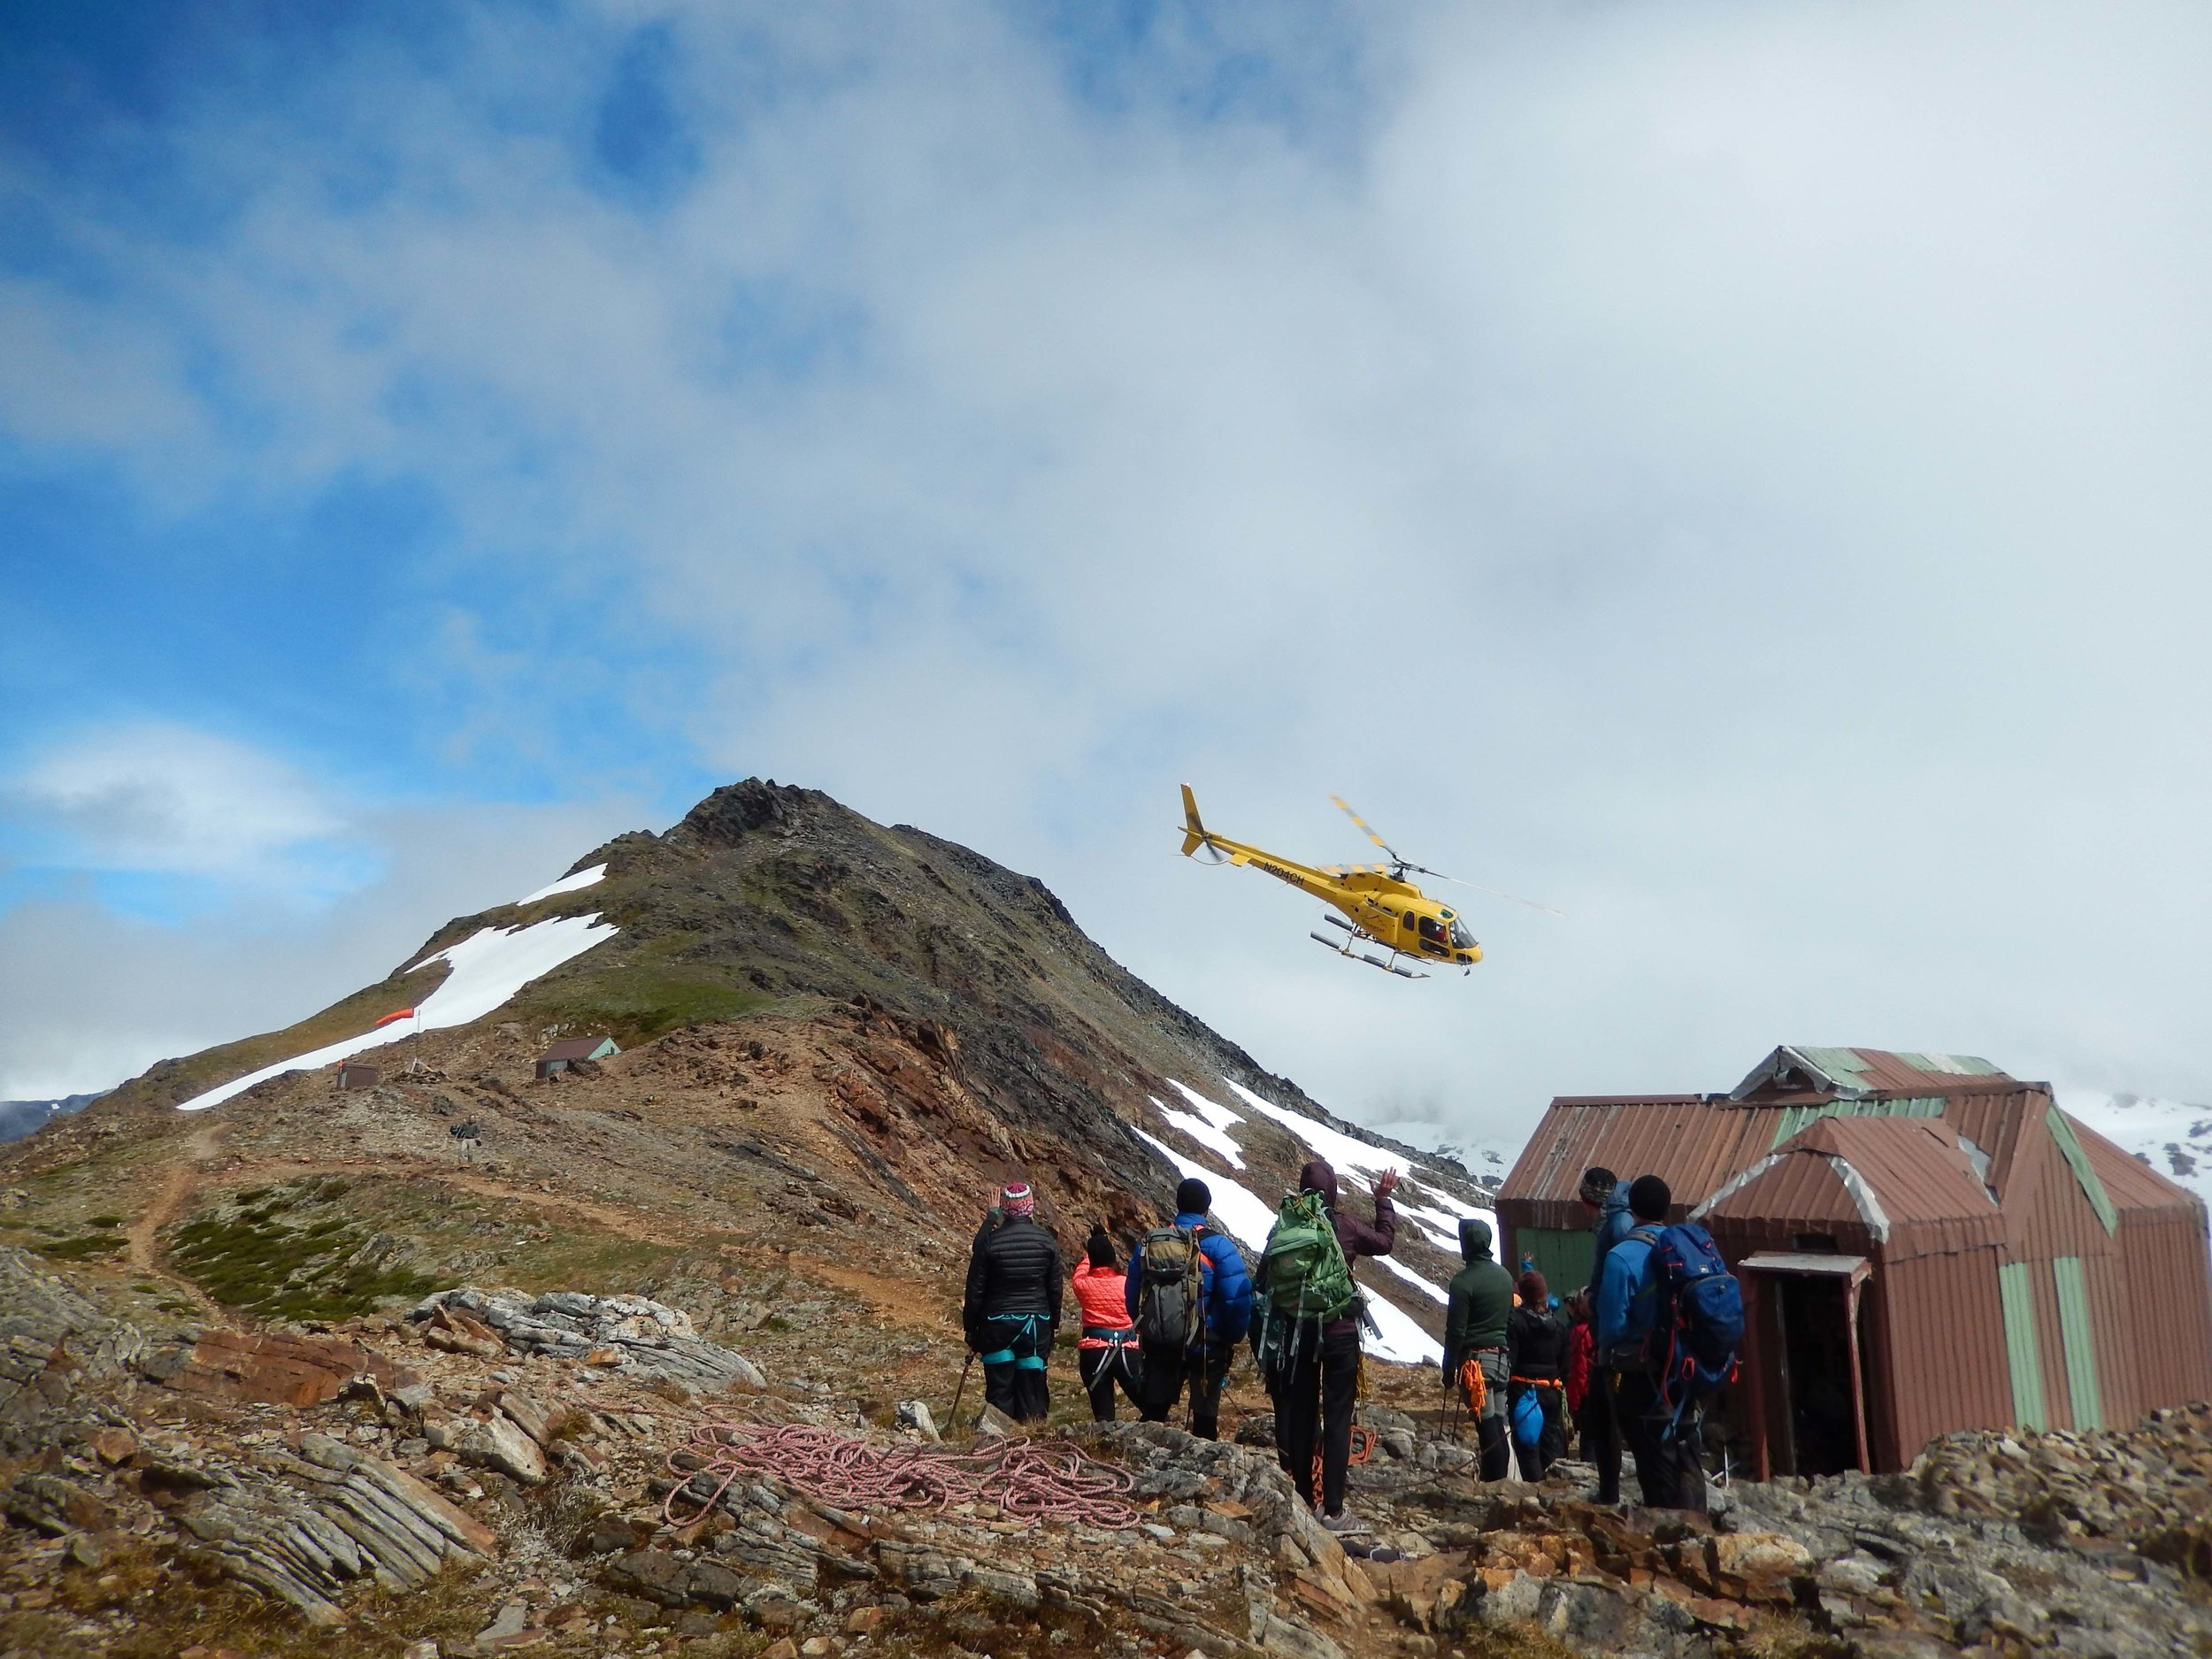 Coastal Helicopter bringing us new supplies and personnel at Camp 17. Photo by Annie Zaccarin.